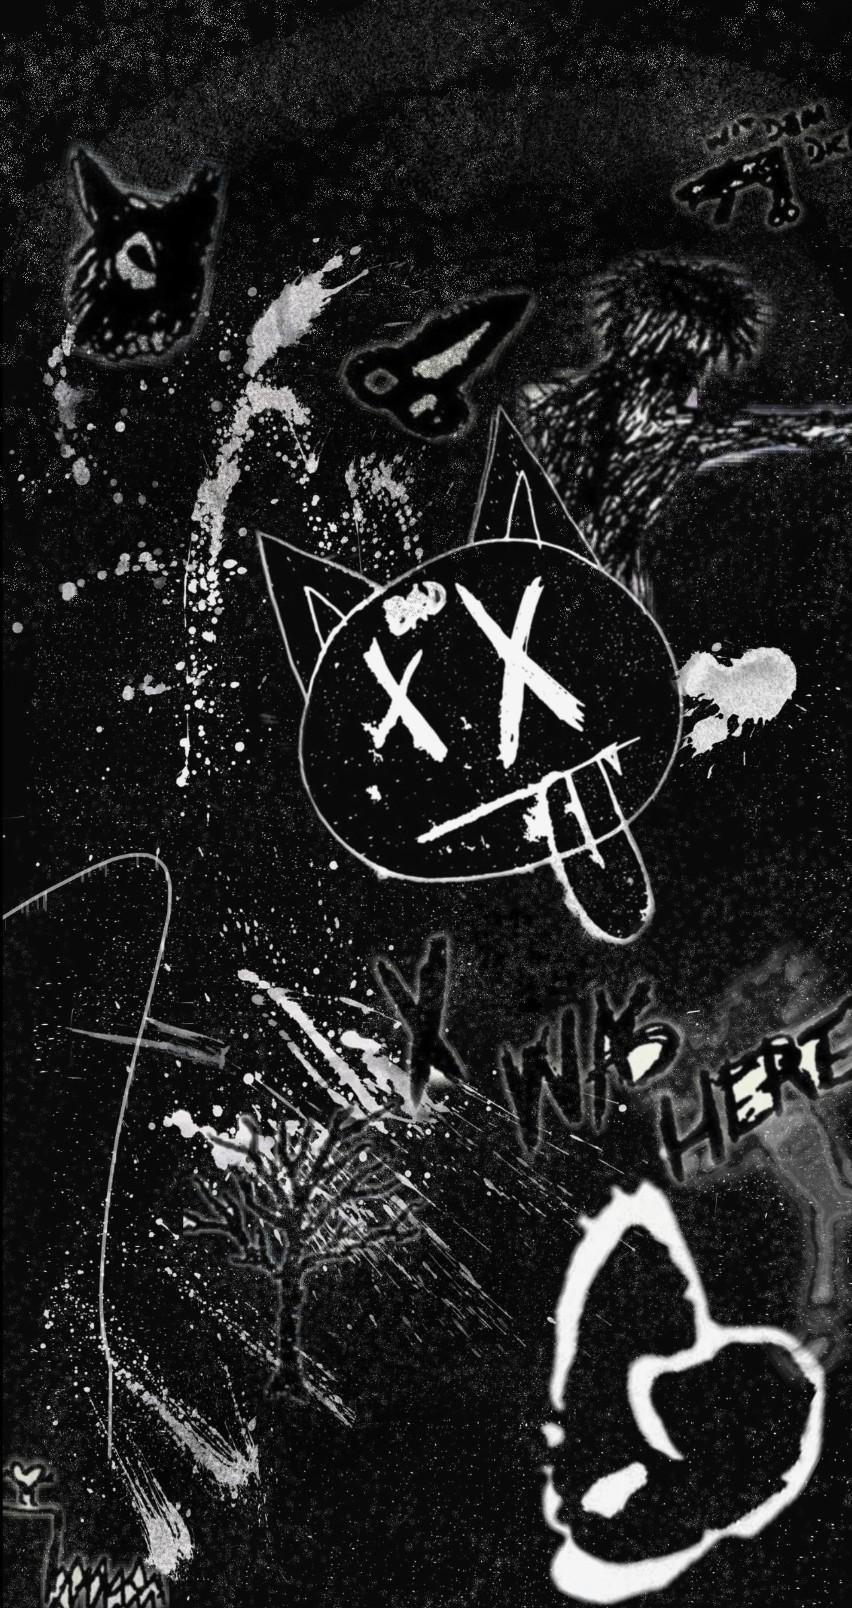 852x1608 I Just changed the wallpaper that I posted some hours ago : XXXTENTACION